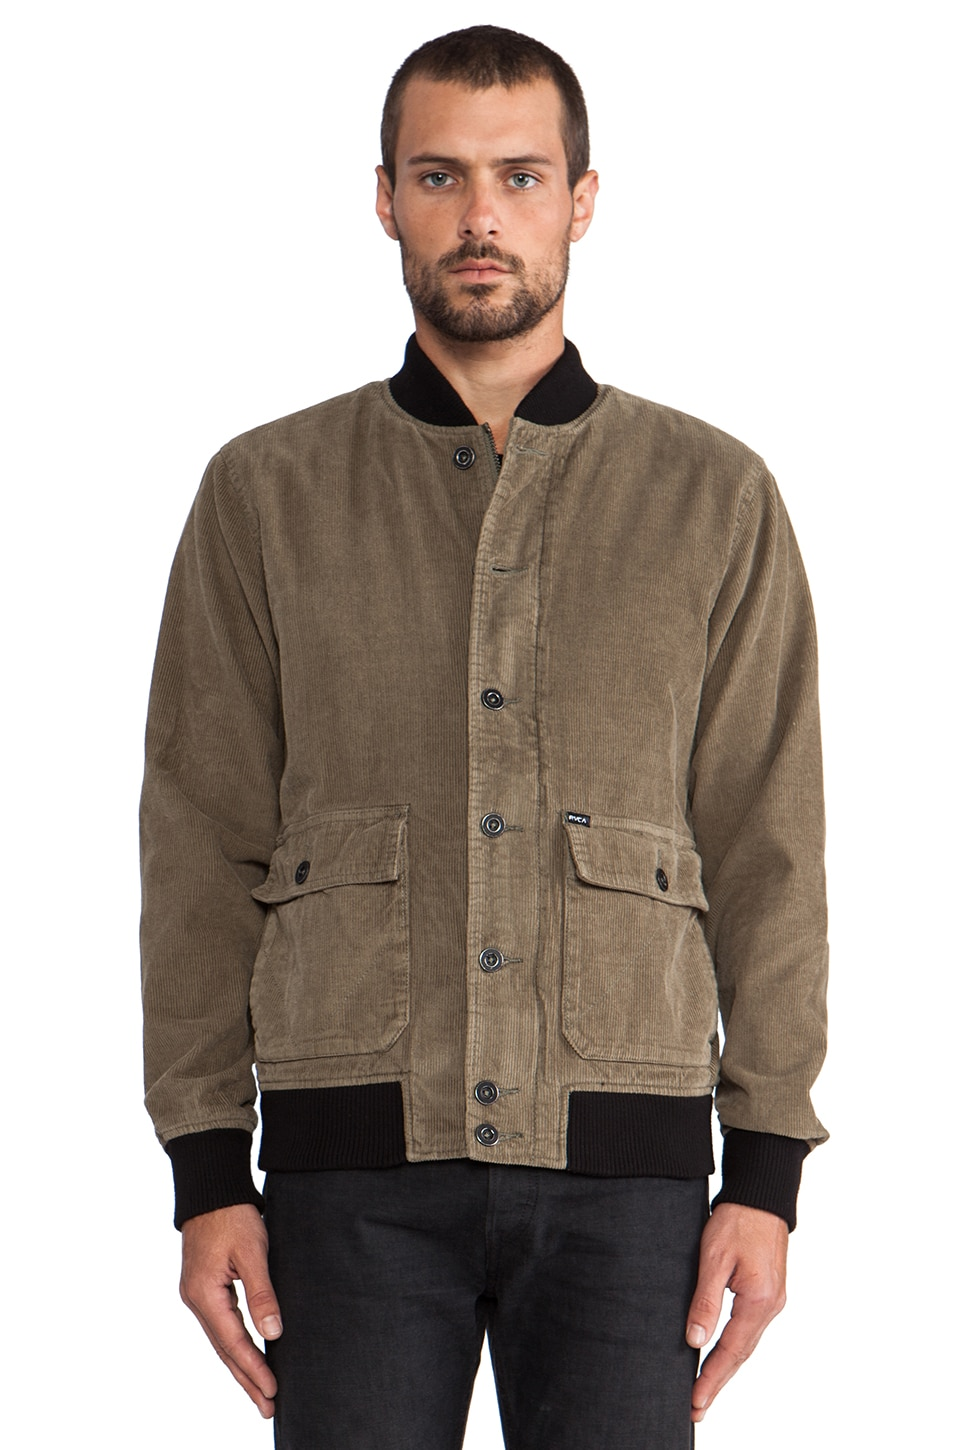 RVCA Varso Jacket in Dusty Olive